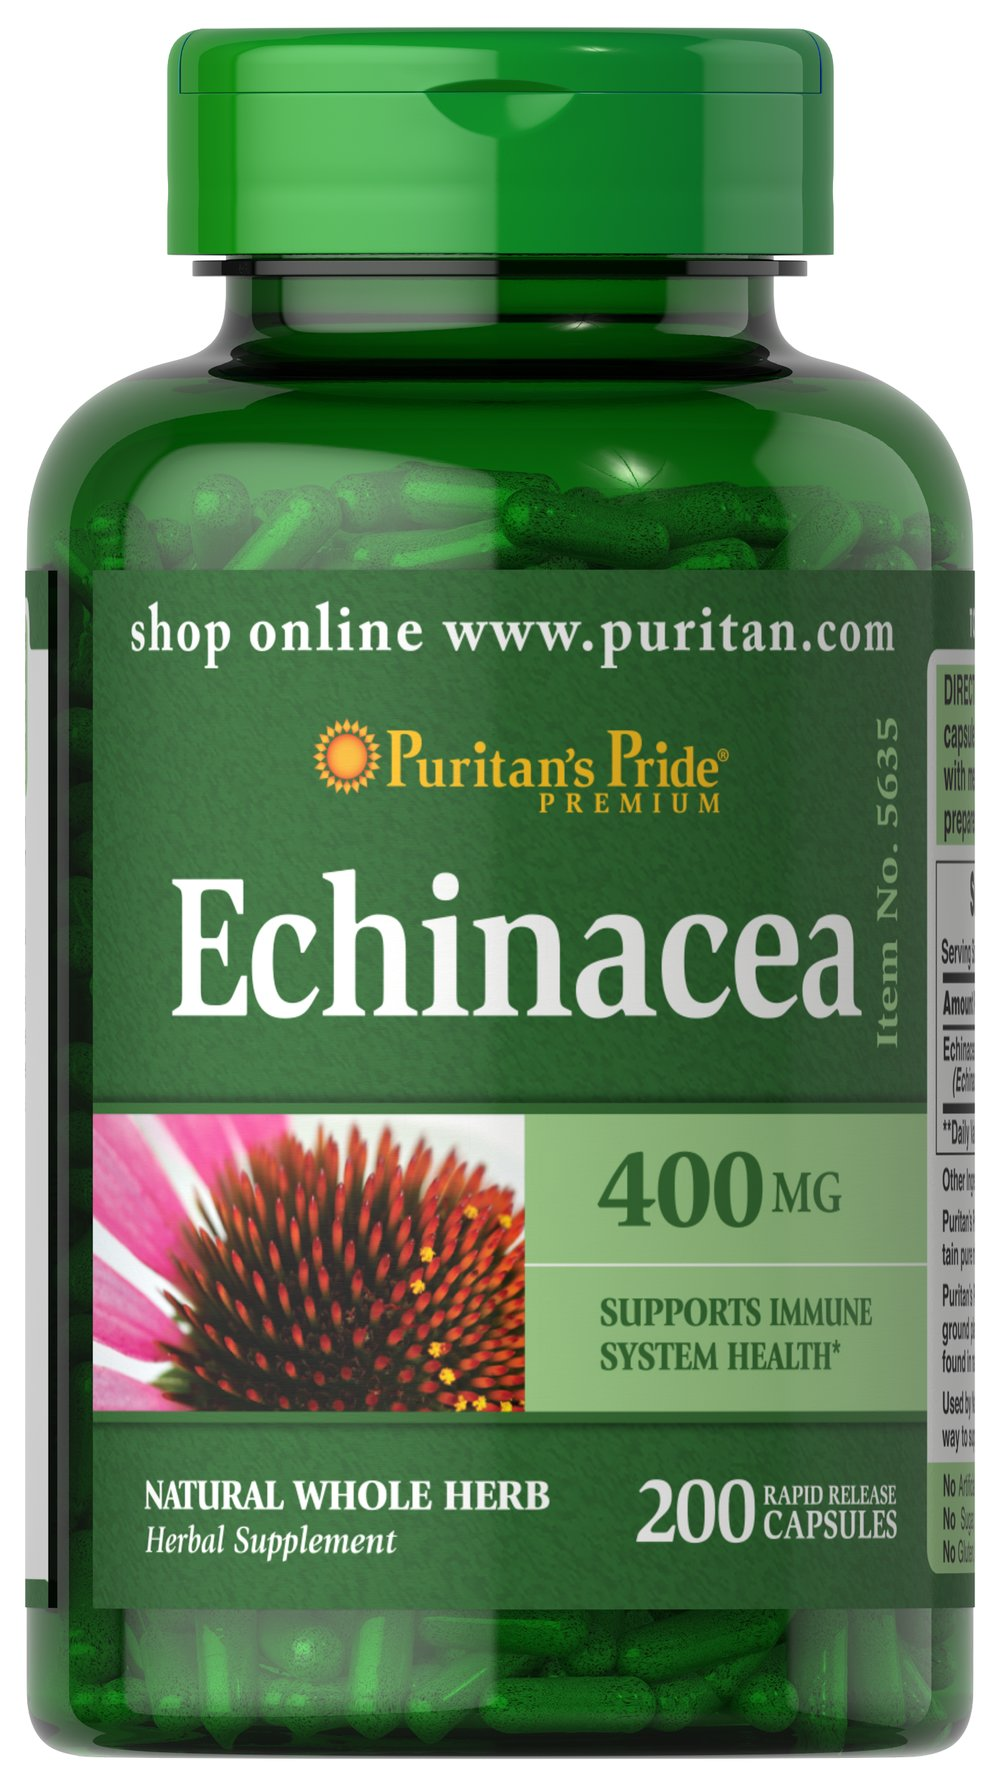 Echinacea 400 mg Used by Native Americans, Echinacea is a centuries-old way to support immune system health.** As an herbal supplement, Echinacea is especially popular during times of seasonal change.</p><p>This product comes in capsule form, but Echinacea is also available as a liquid extract, in combination with Goldenseal, as tablets in combination with Vitamin C and Rose Hips, or in a liquid formula specially designed for juniors.</p> 200 Capsules 400 mg $9.99